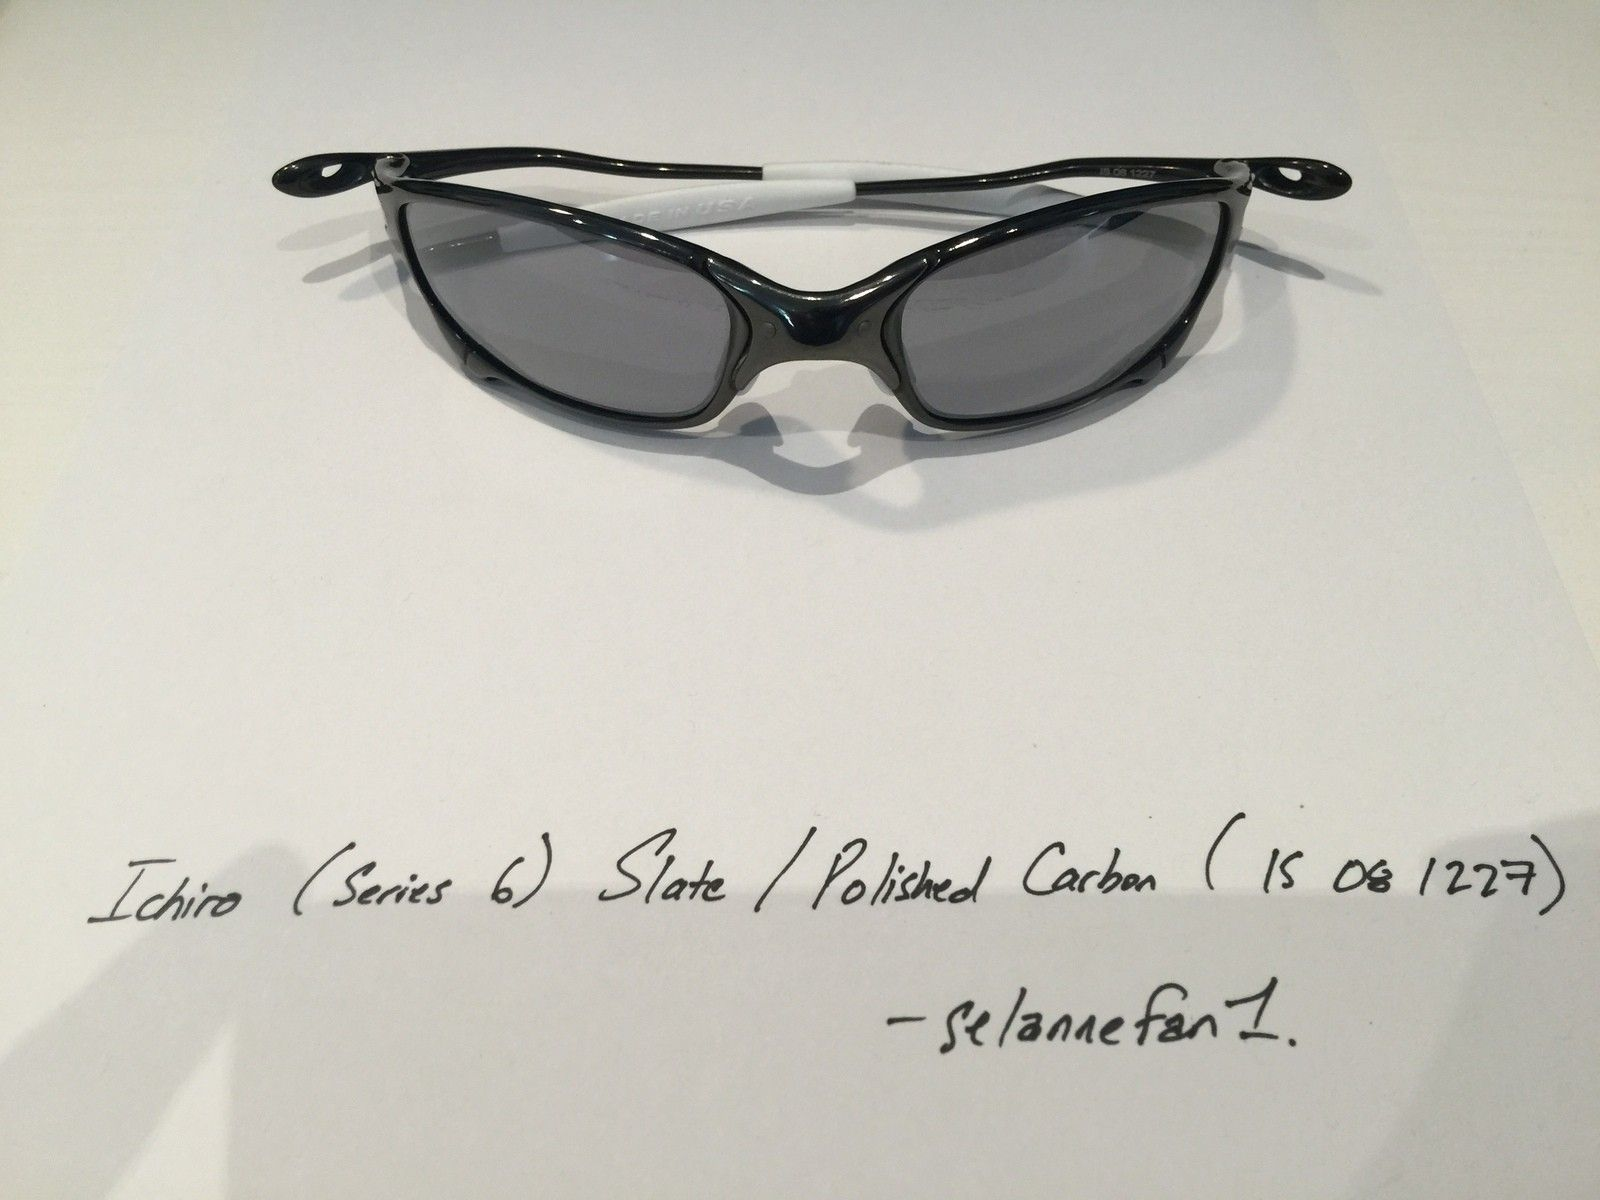 Ichiro Polished Carbon / Slate Juliets (with serial) - IMG_3771.JPG